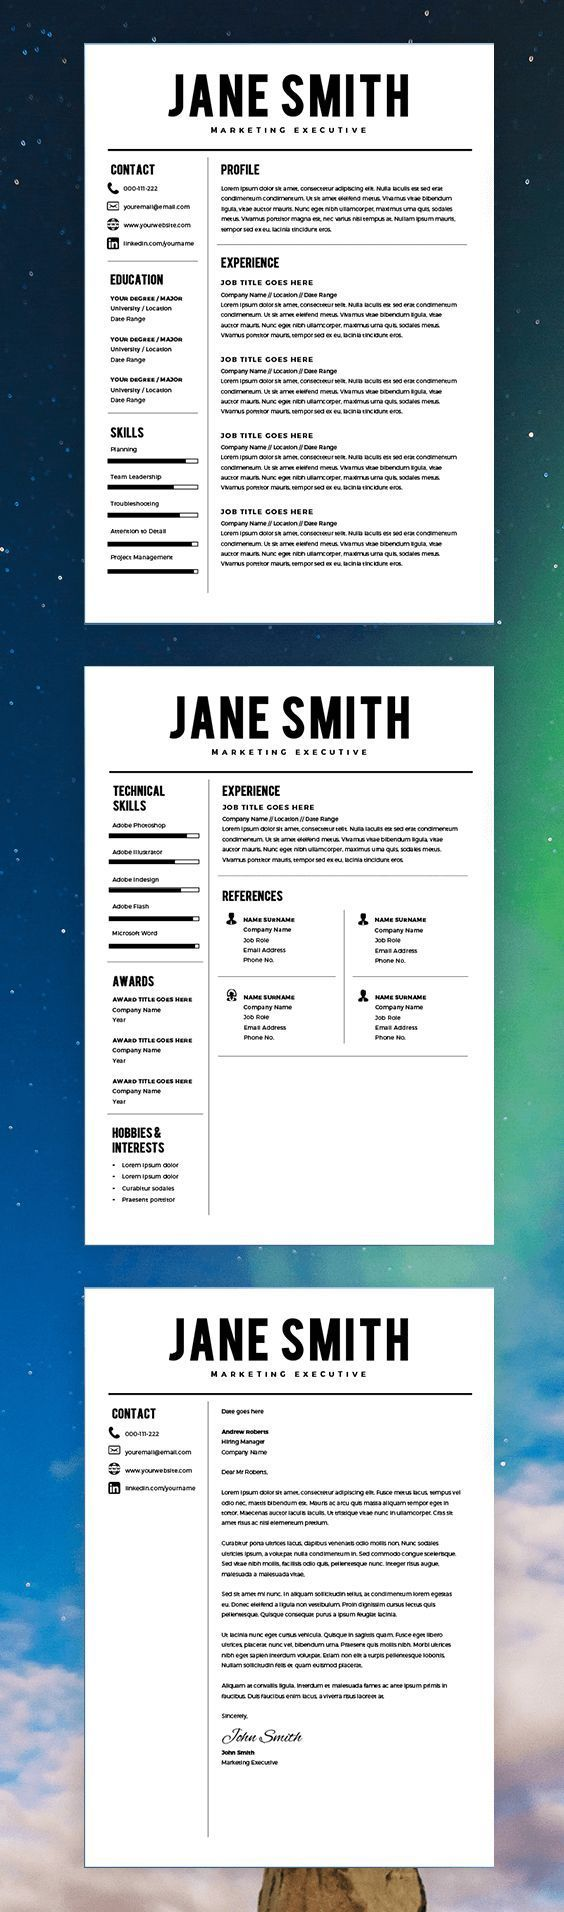 Best Resume Template - CV Template - Free Cover Letter - MS Word on ...